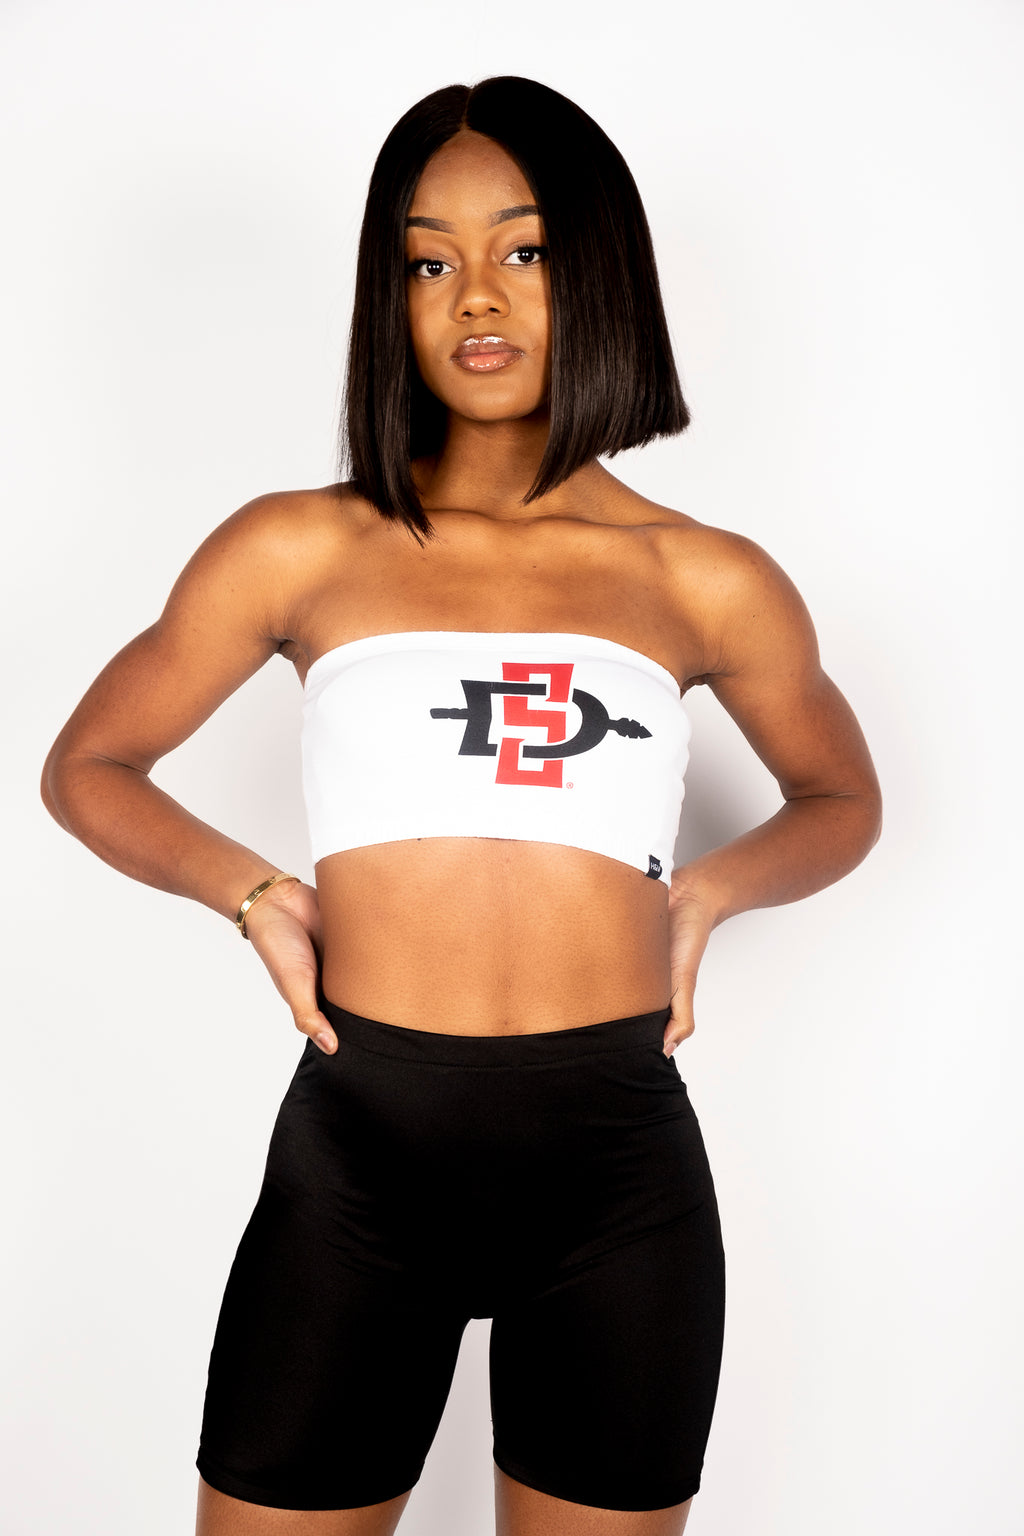 The SDSU White Interlock Bandeau Top - Hype and Vice